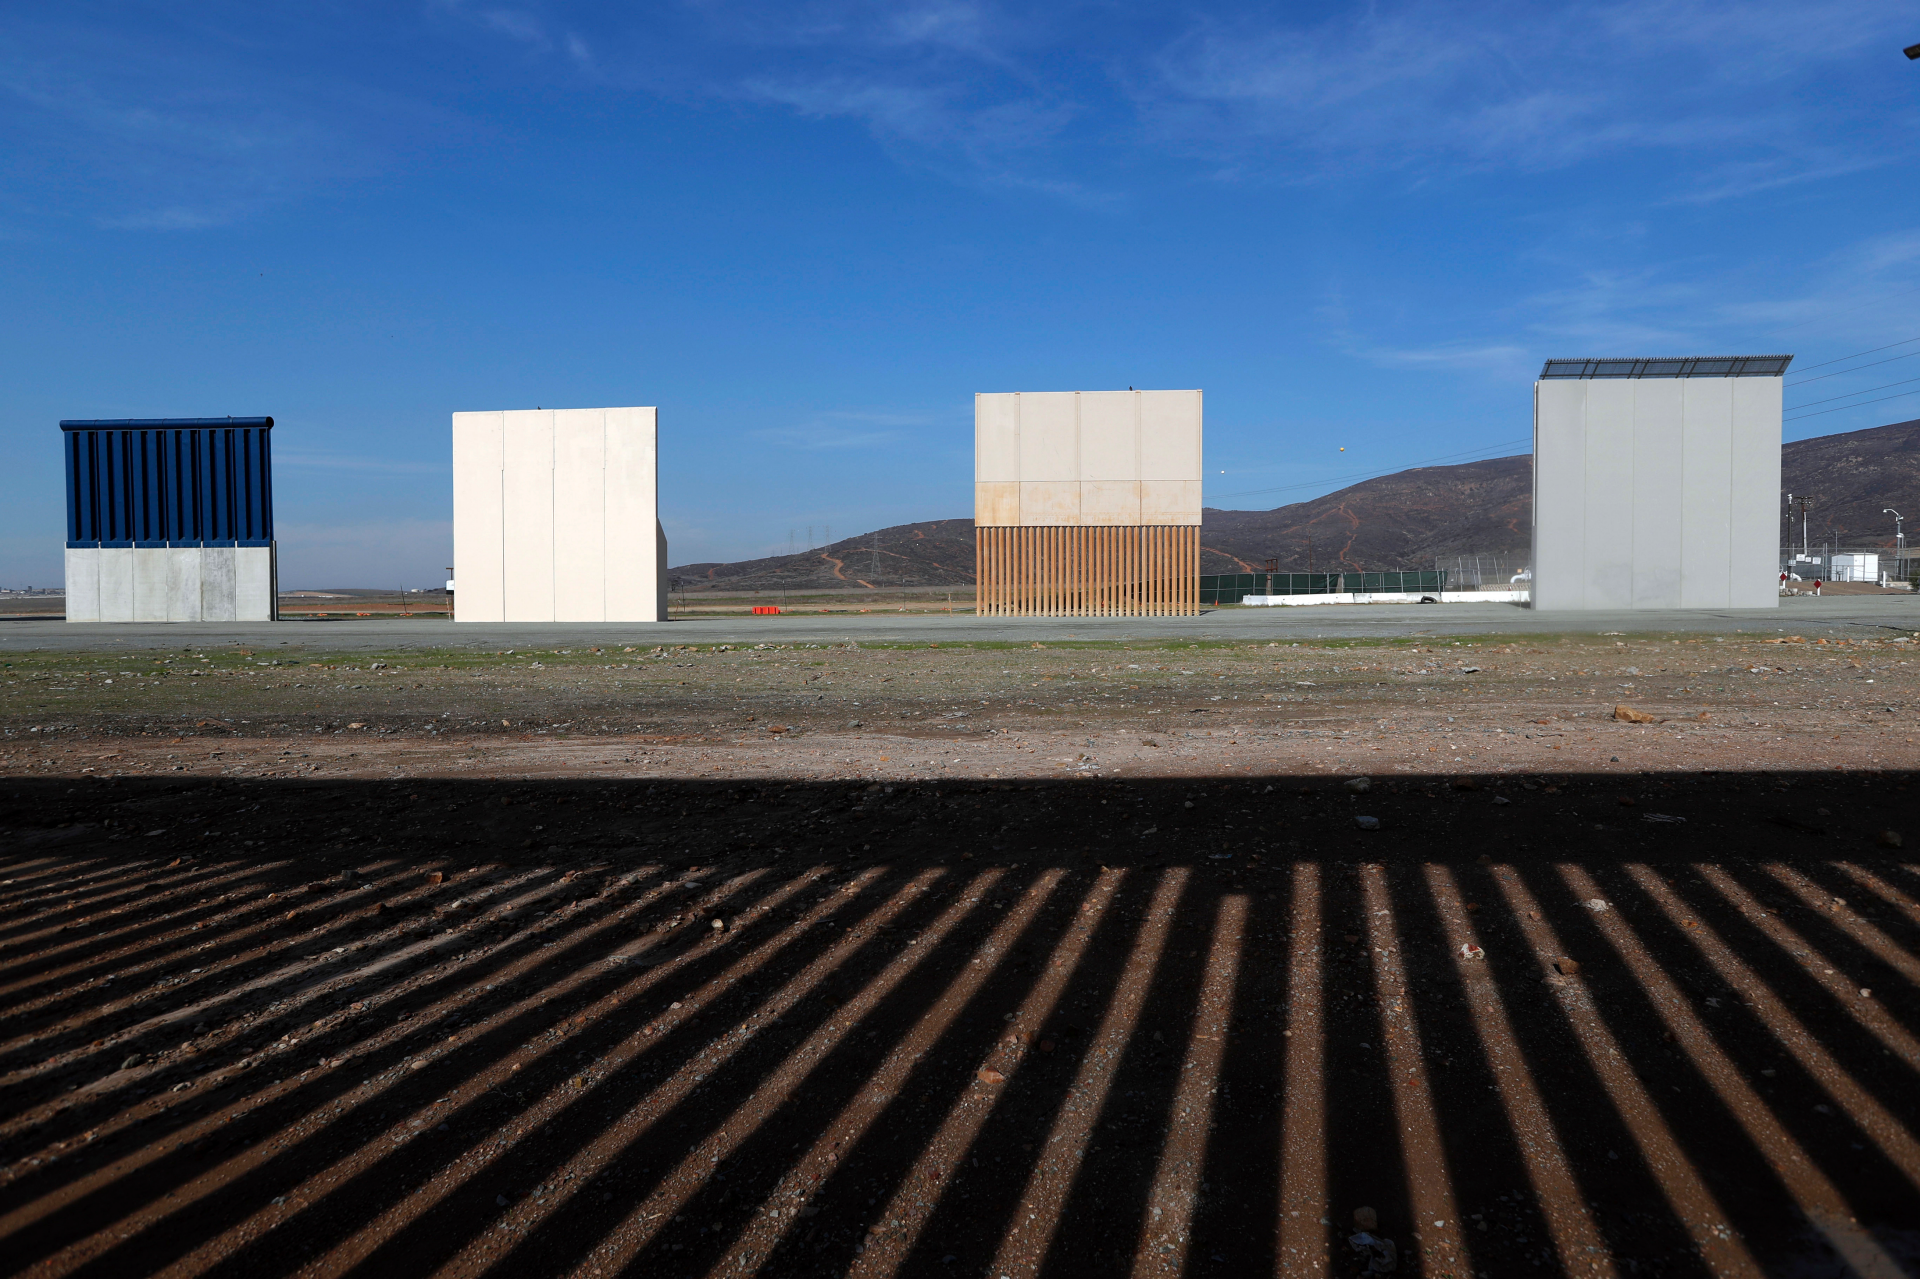 Trump's wall prototypes to come down along US-Mexico border